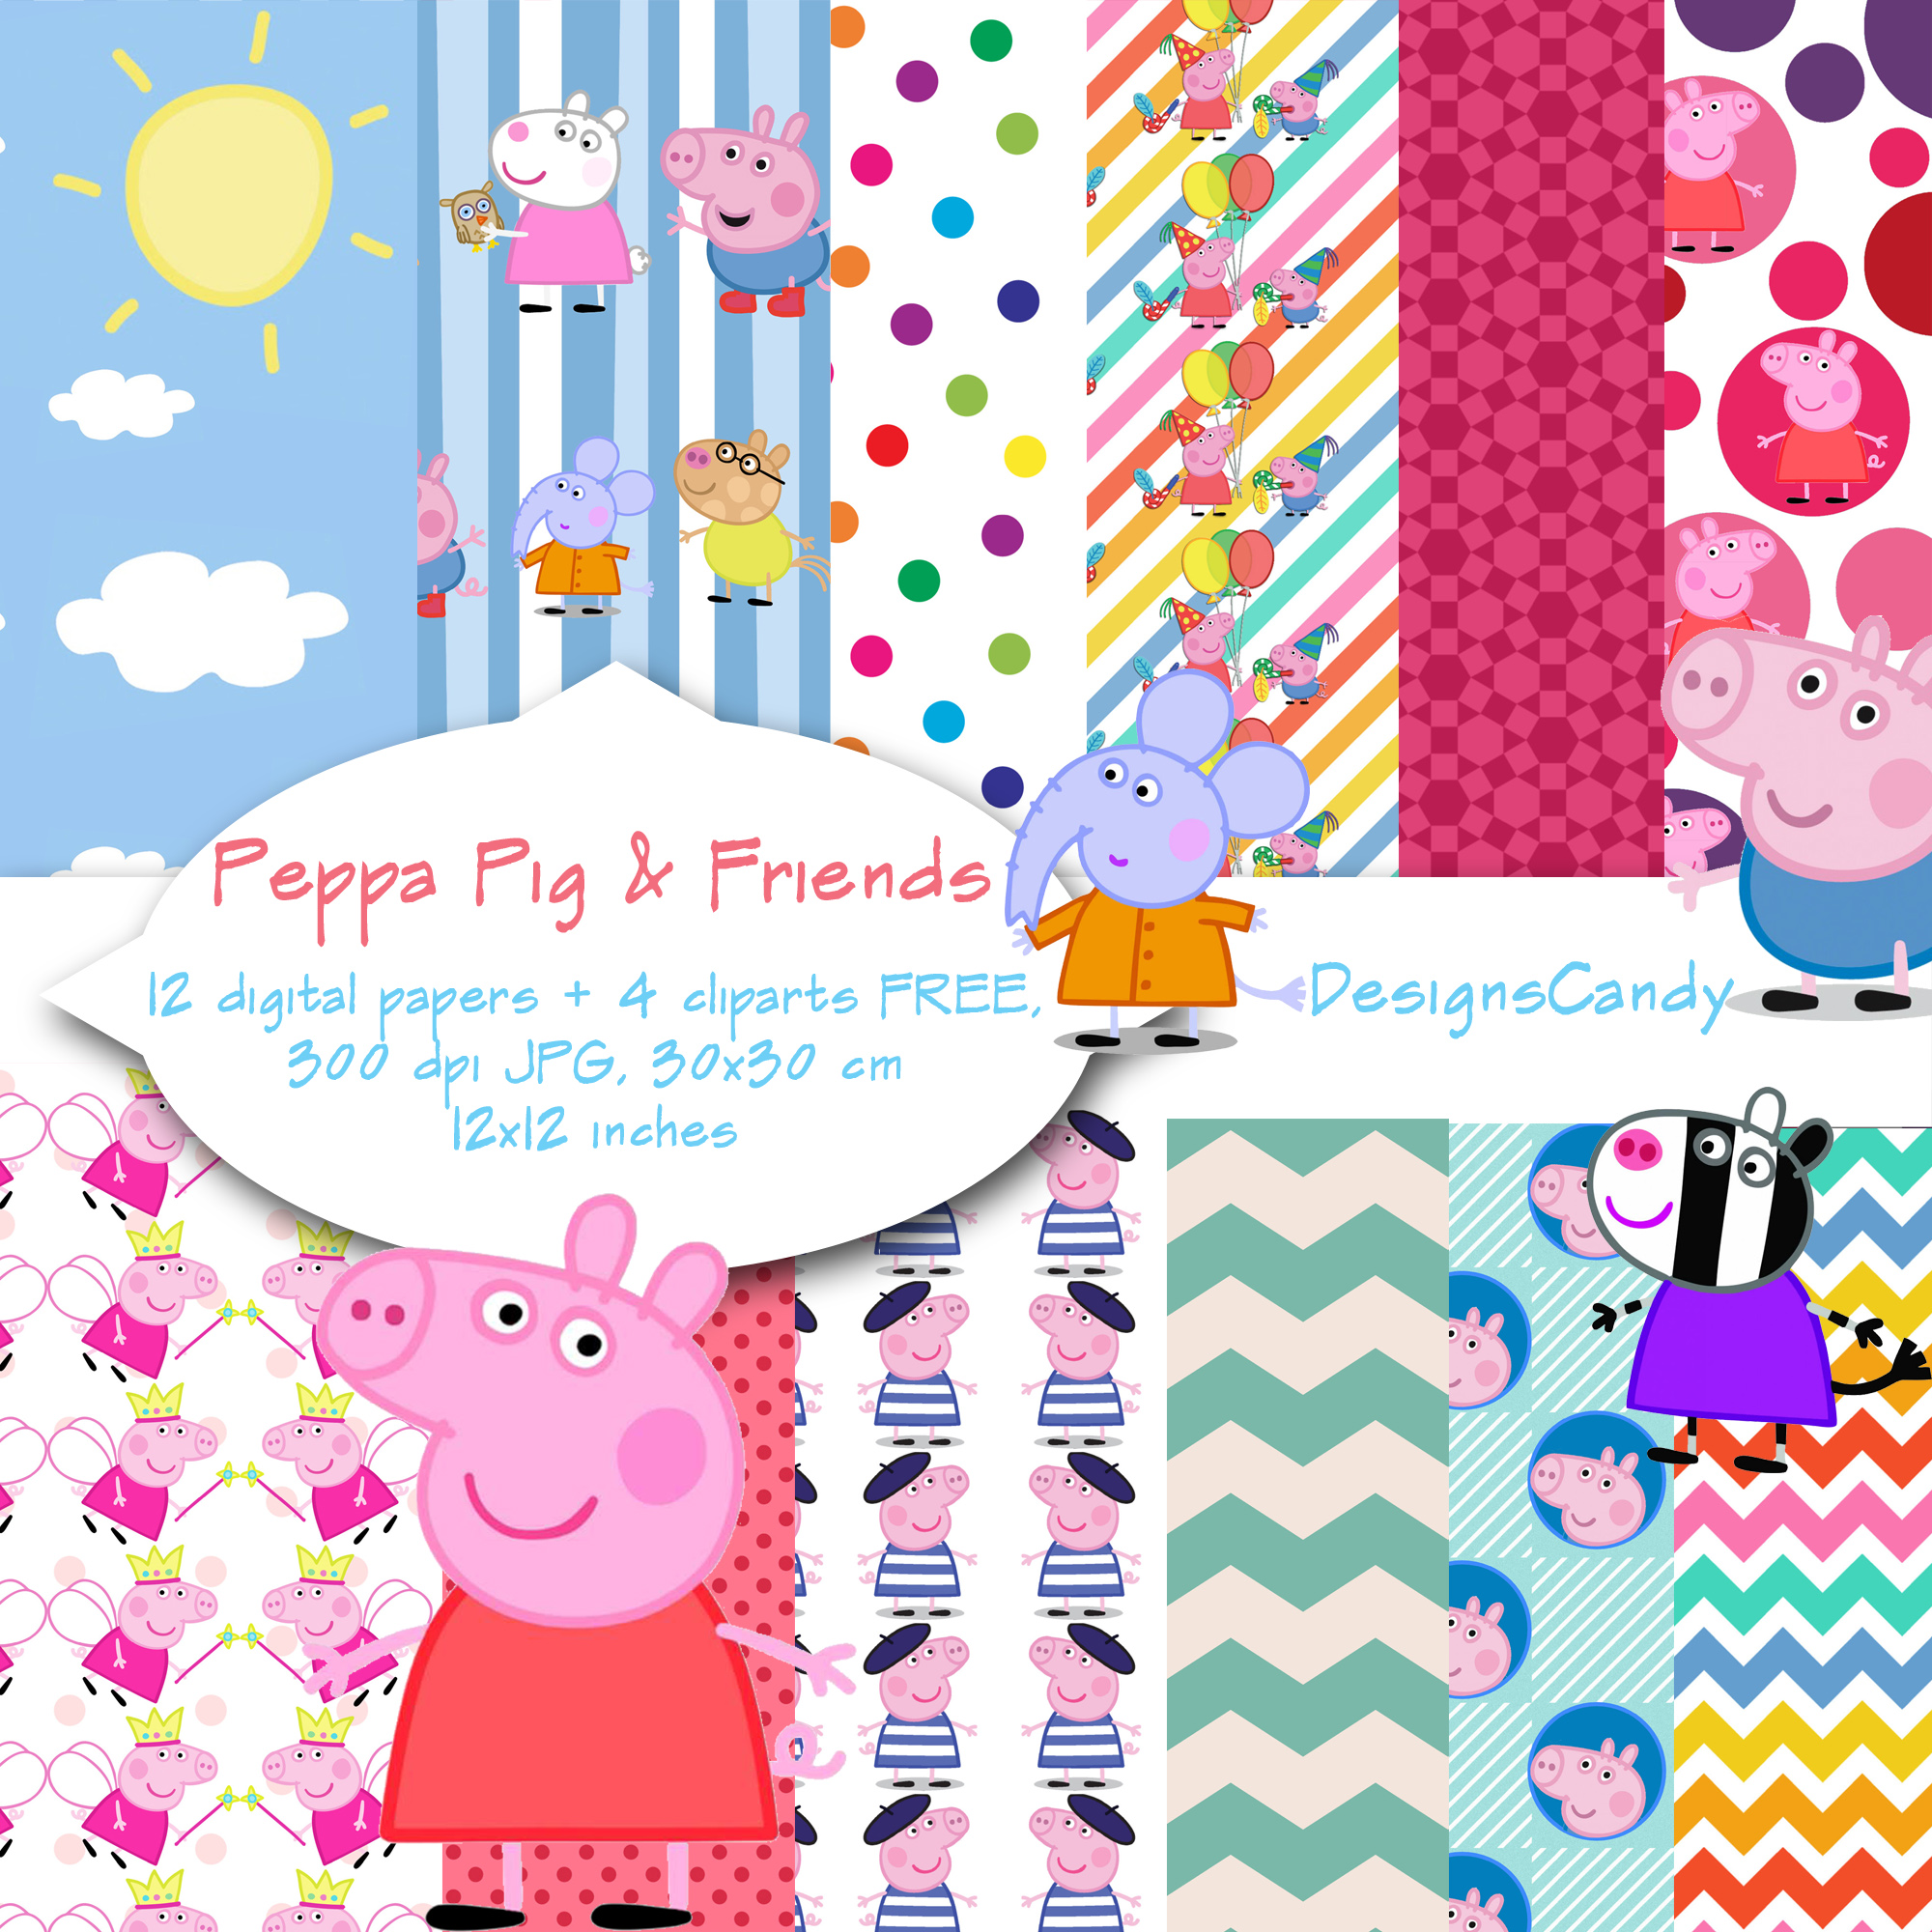 Peppa Pig Inspired Digital Paper Peppa Pig Clipart Scrapbook Background Digital Paper Birthday Party Theme Invitations P C Use